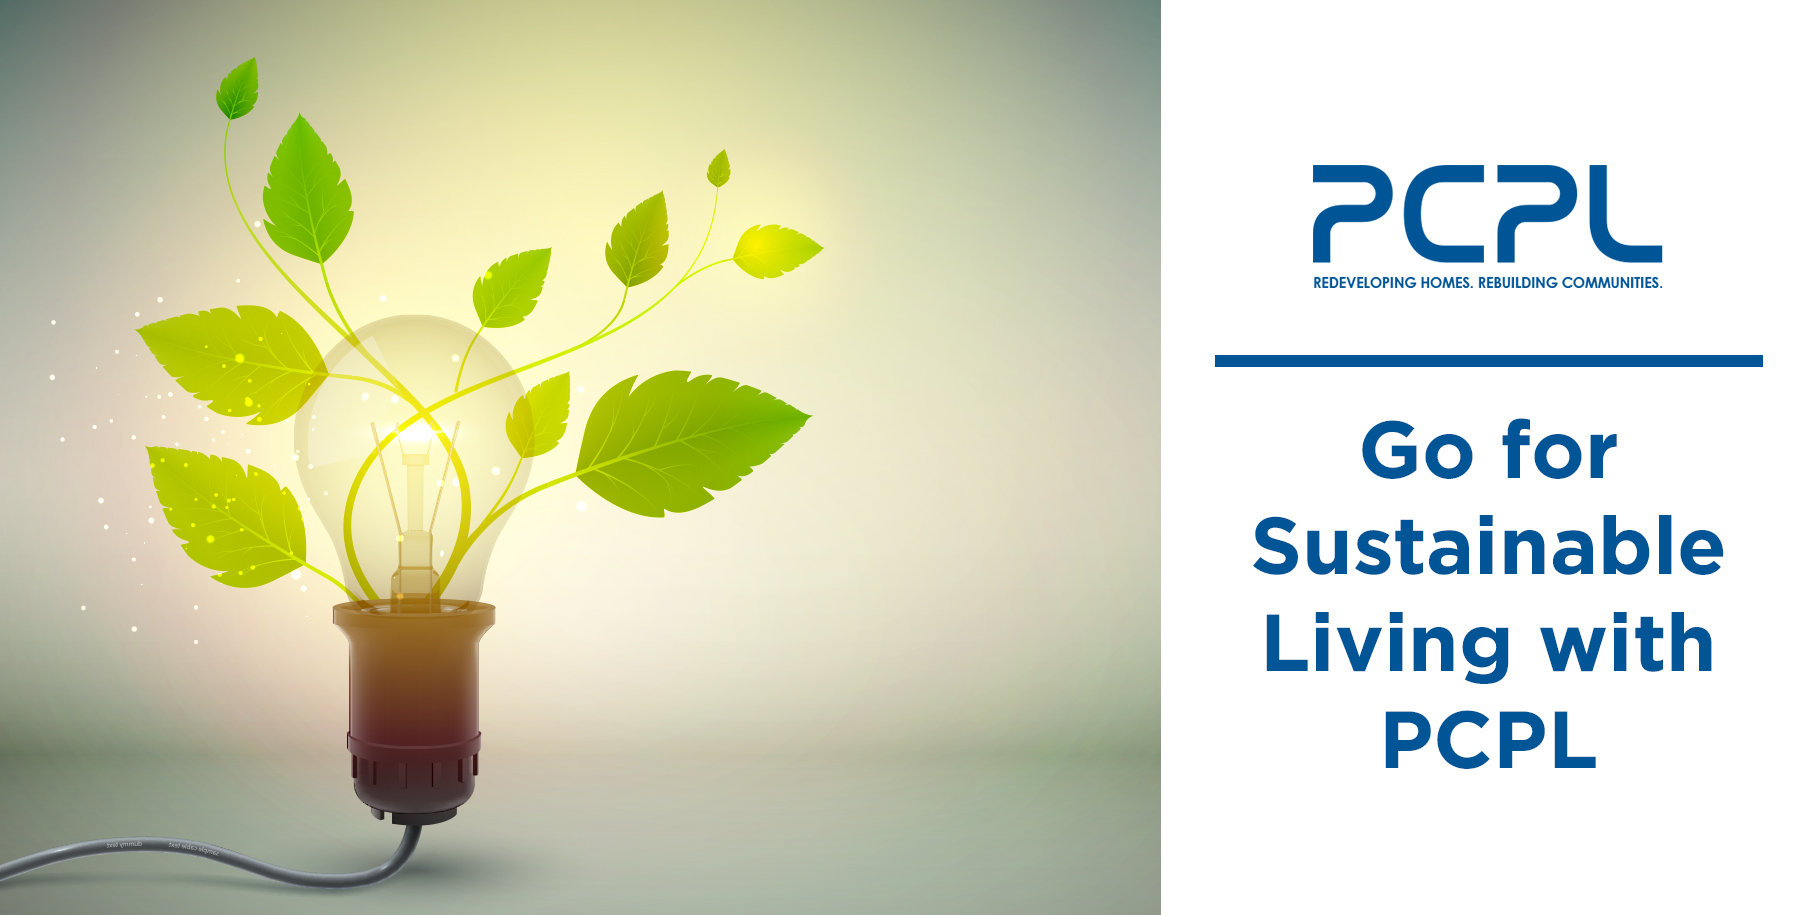 Go for Sustainable Living with PCPL